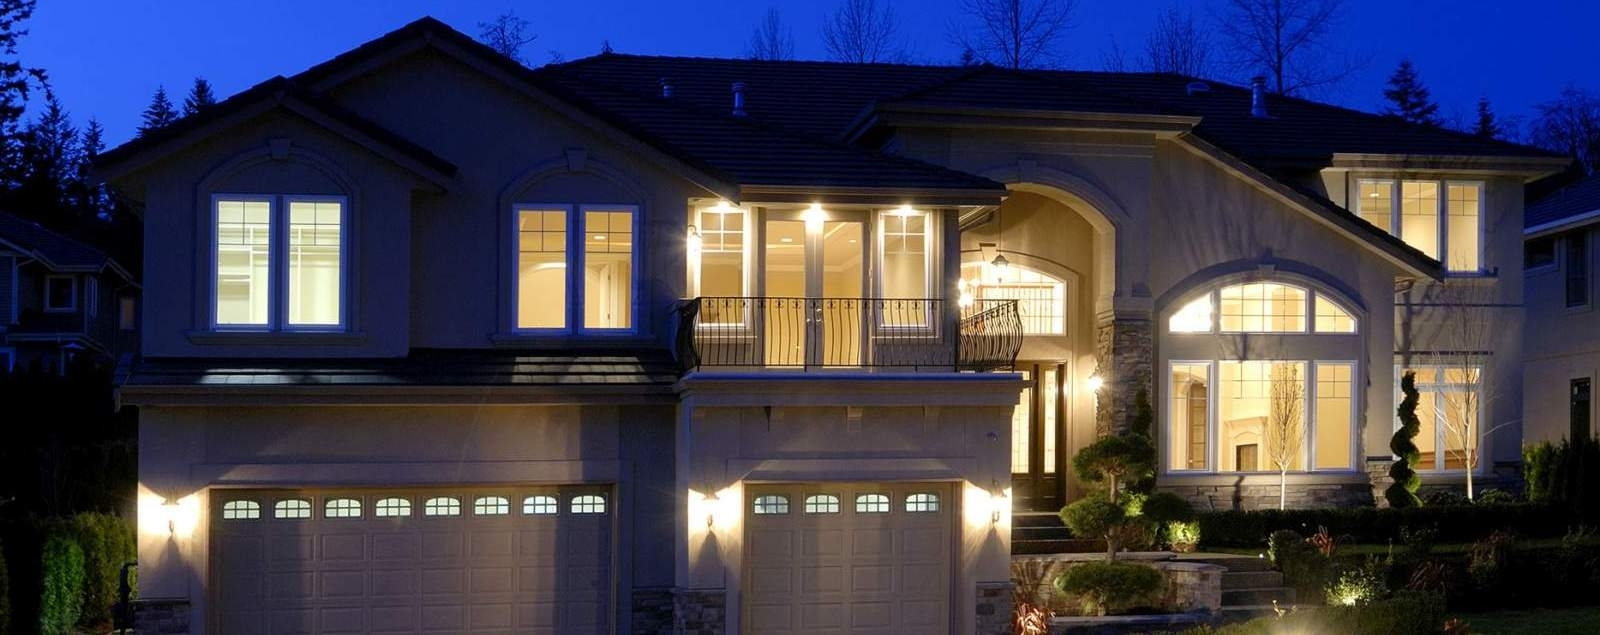 Trendy Outdoor Light Fixtures – Home Exterior Pendants, Flush & Porch Lighting With Regard To Outdoor House Lanterns (View 11 of 20)